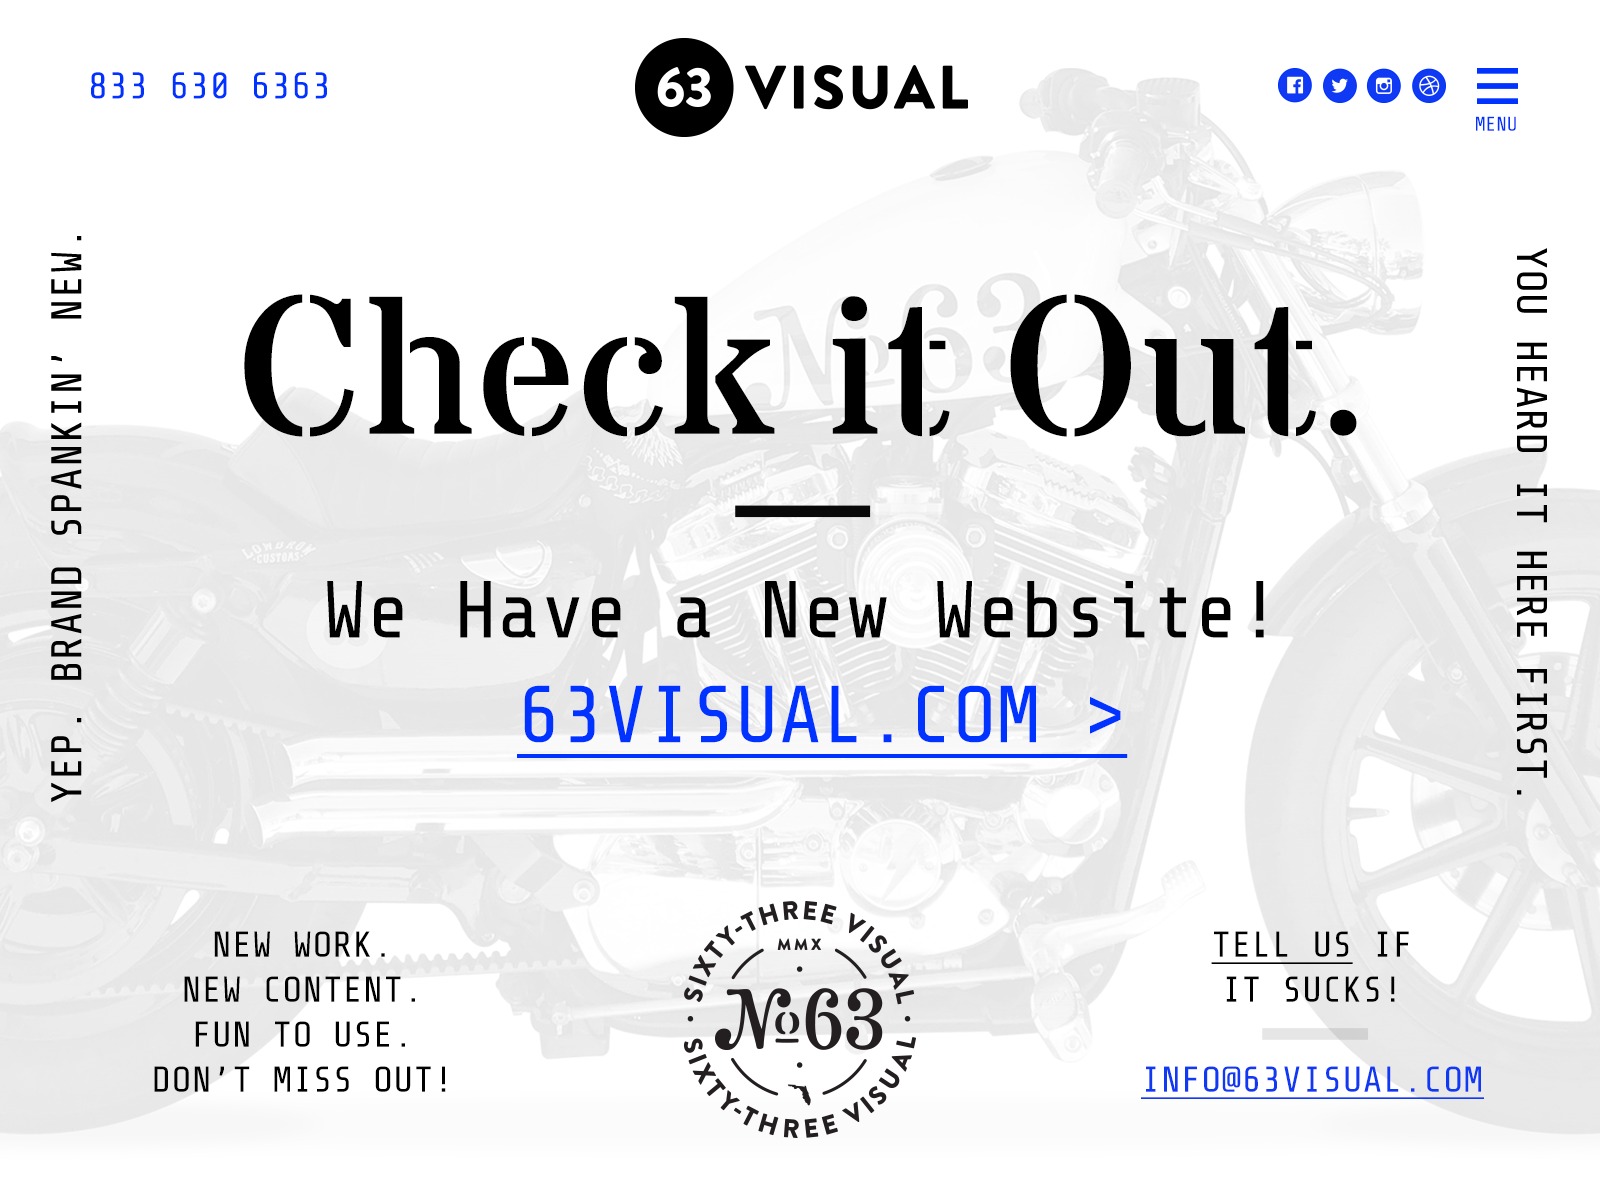 63 visual website launch